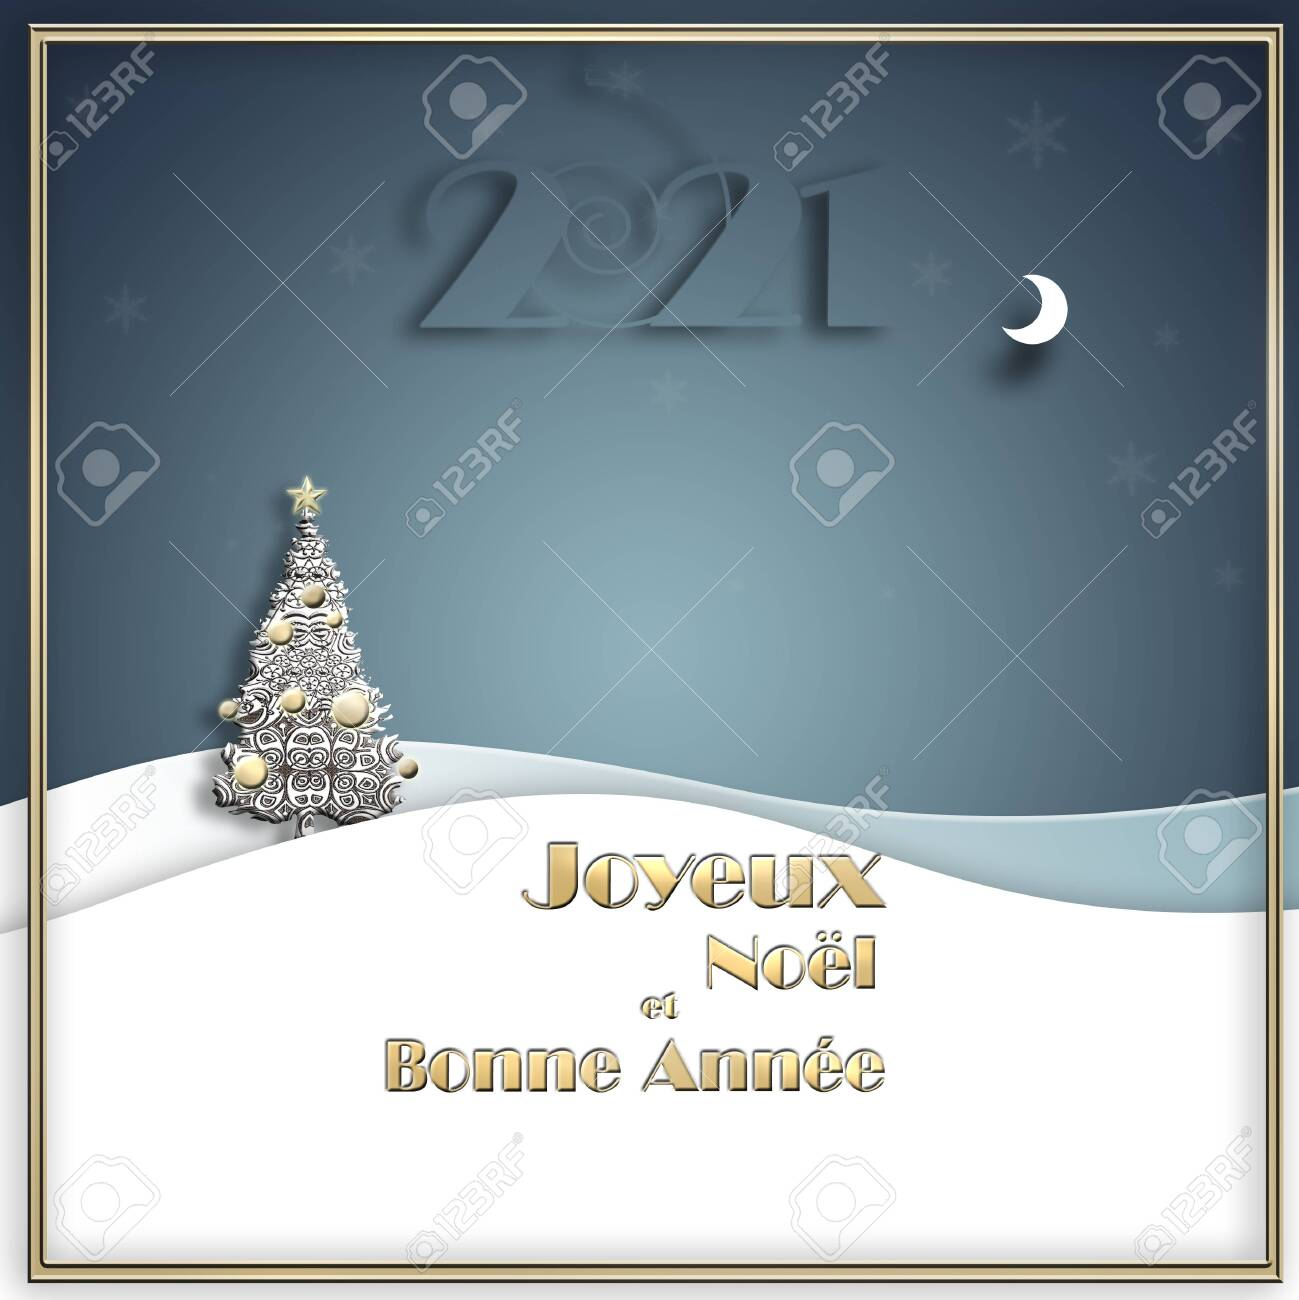 Hanging Banner Images Merry Christmas & Happy New Year 2021 Merry Christmas 2021 Happy New Year Card Template Pastel Winter Stock Photo Picture And Royalty Free Image Image 154013587